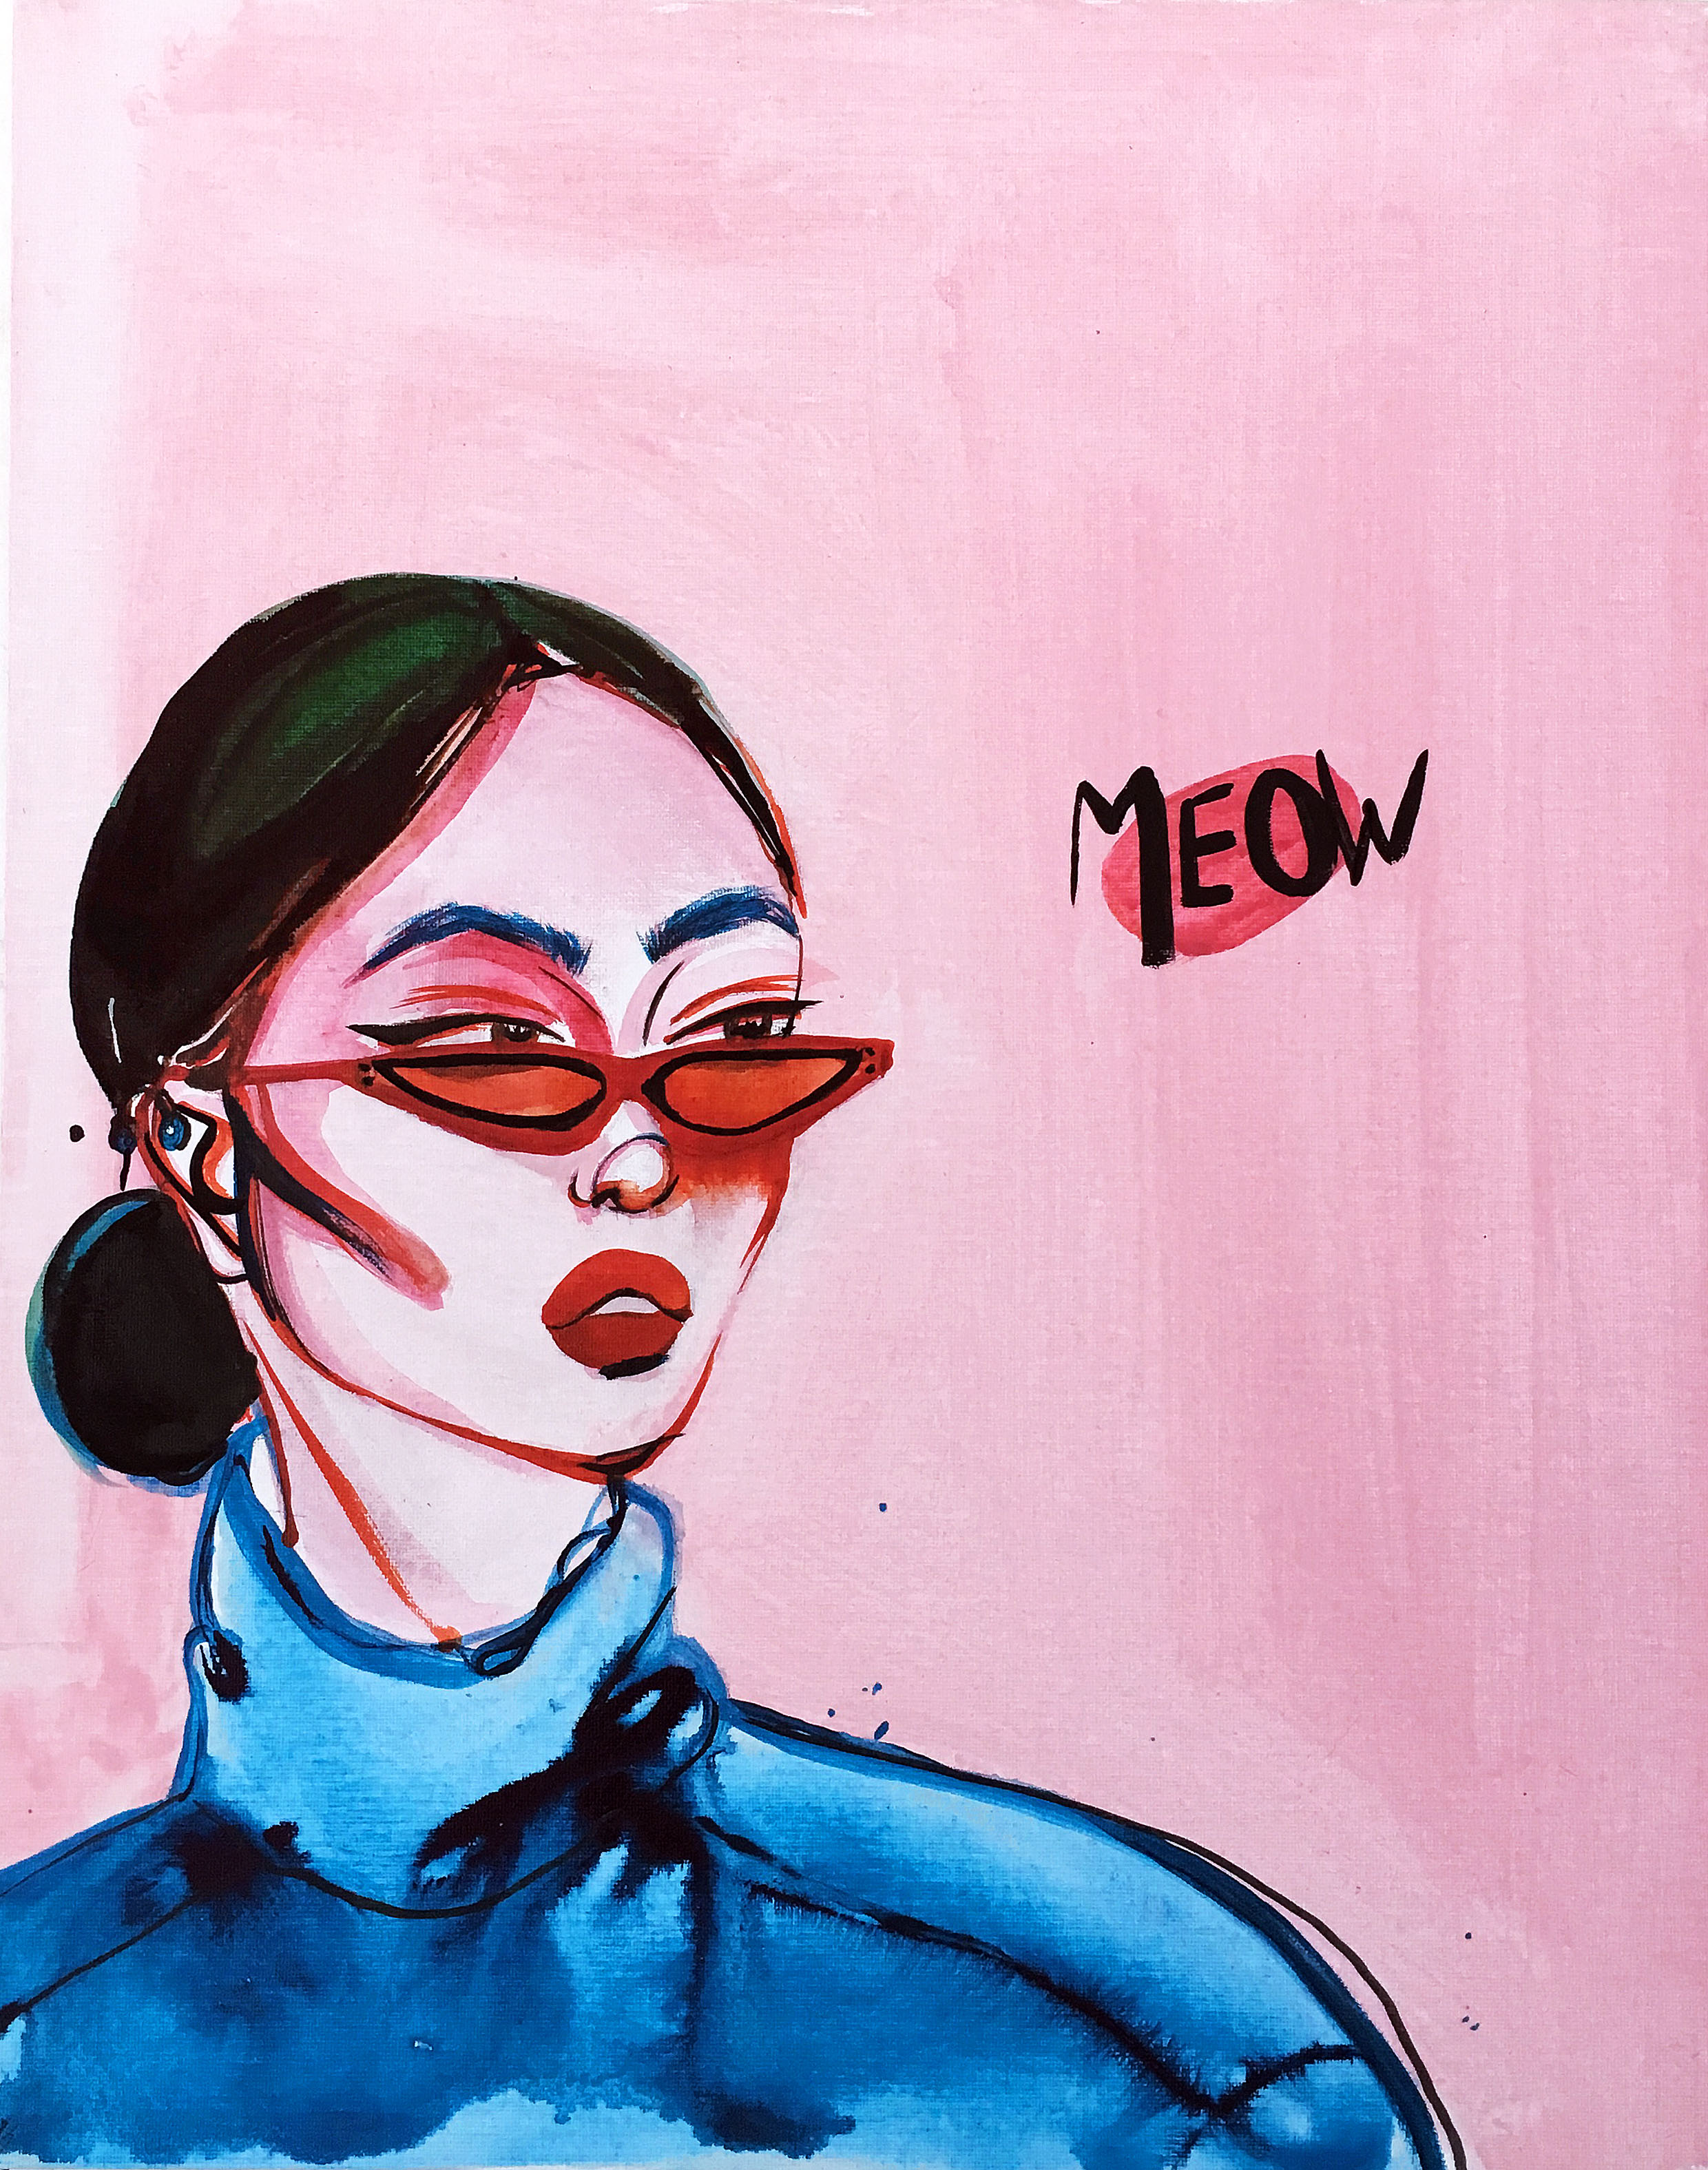 Meow - Mixed media painting on canvas board50.5x40.5x0.3cm£450 Unframed£600 Framed